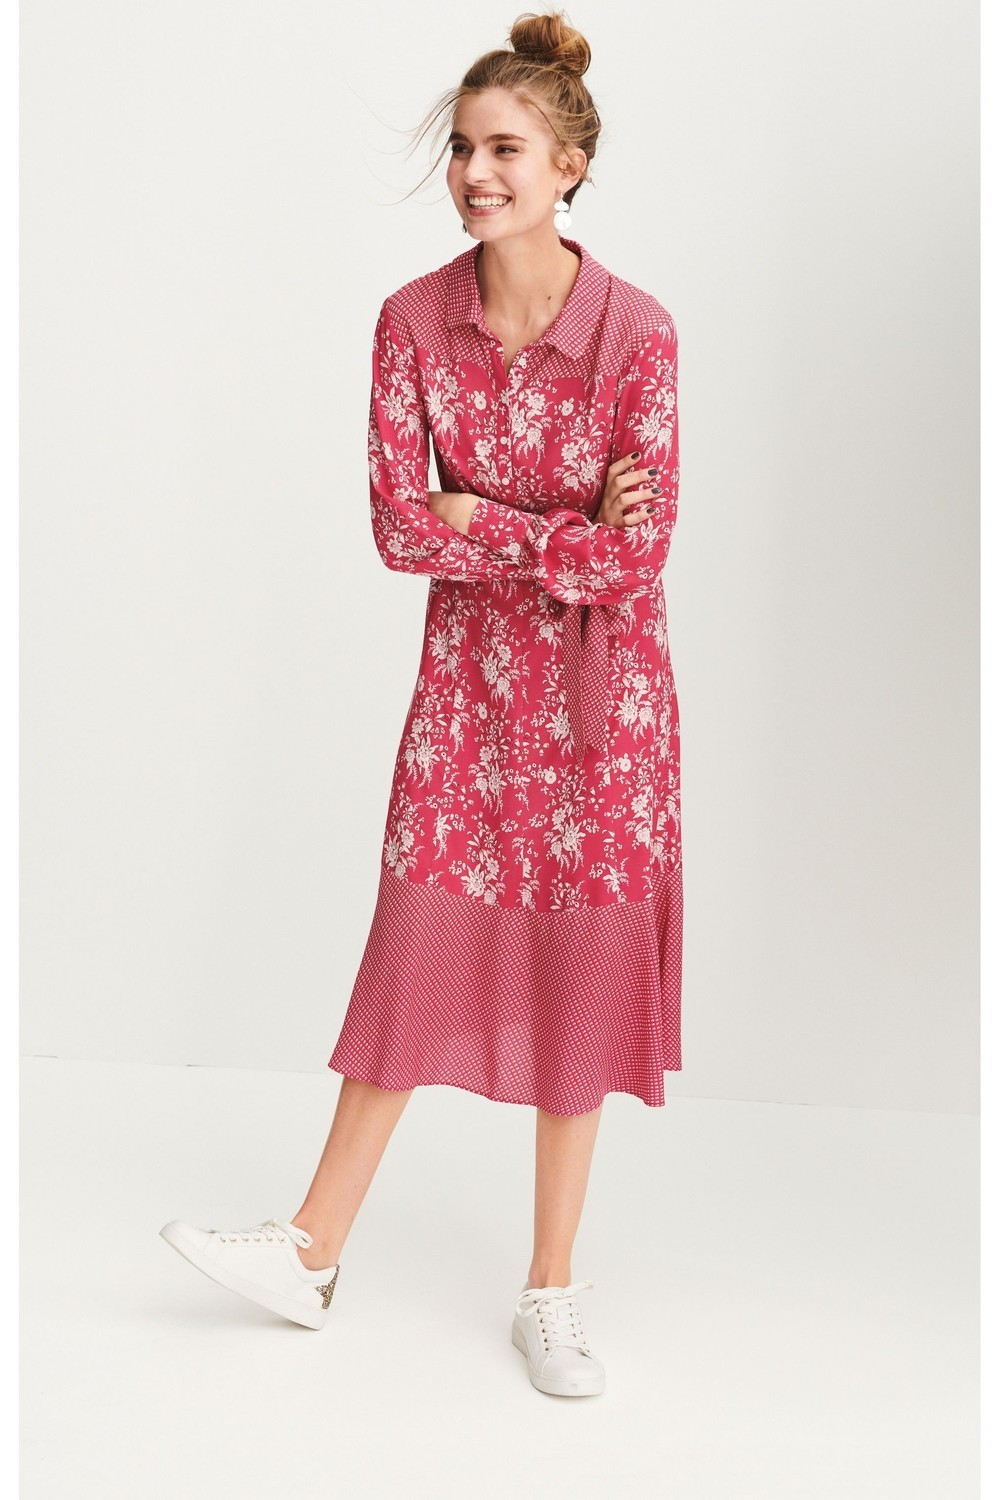 Next Pink Print Shirt Dress